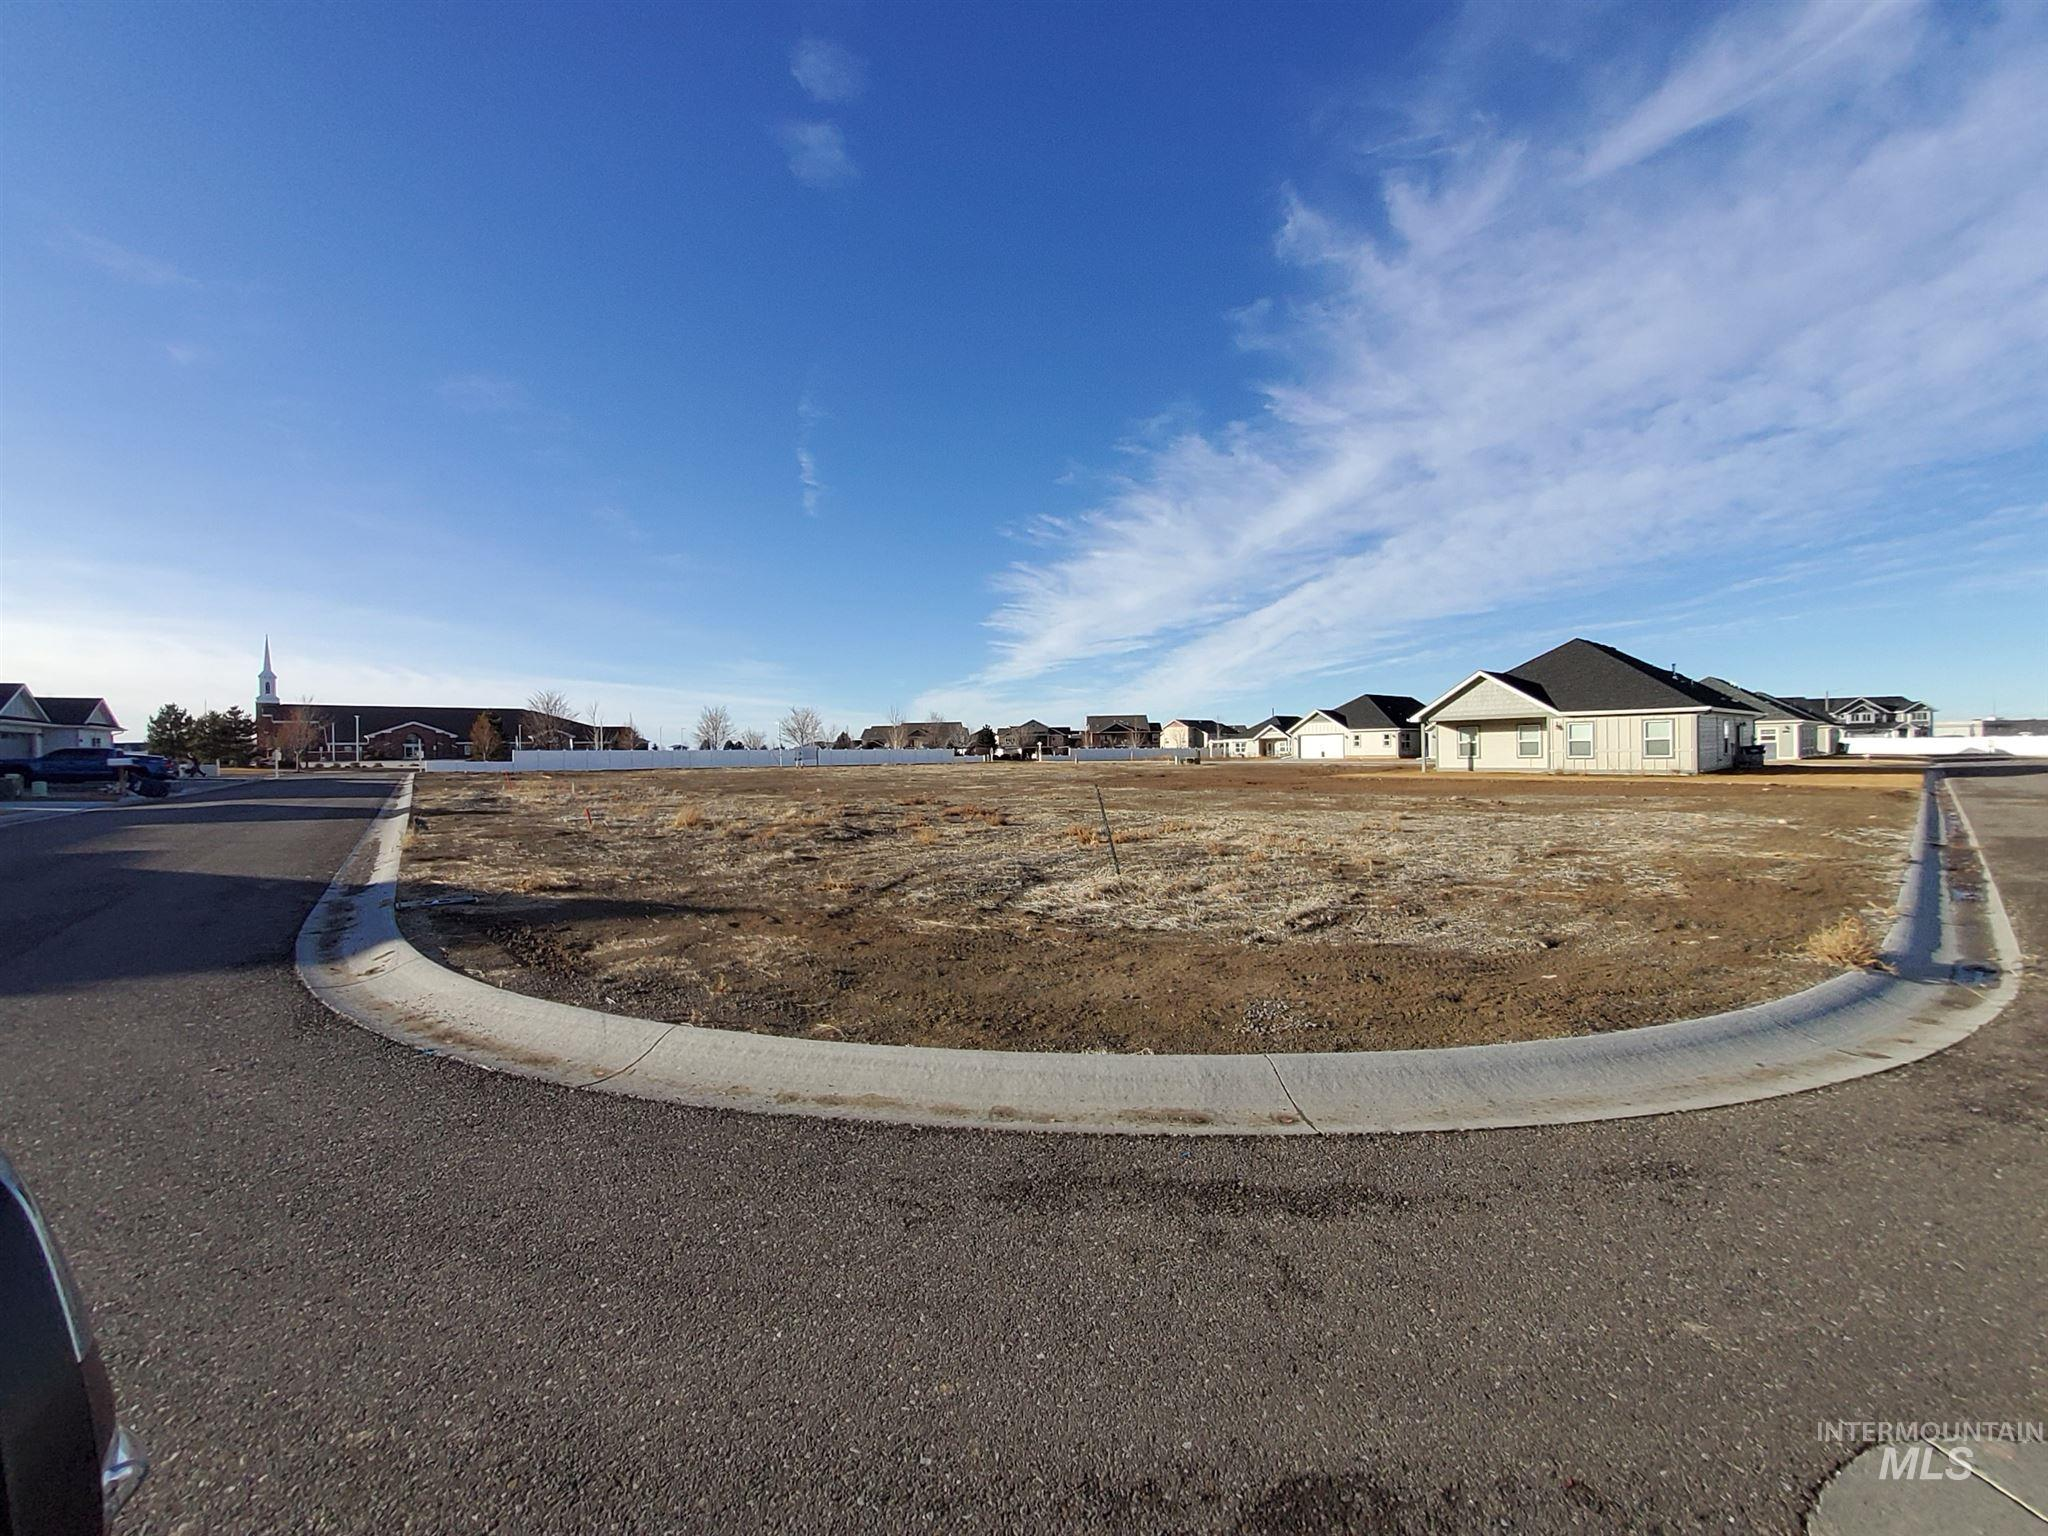 1092 Cottage Rd, Twin Falls, Idaho 83301, Land For Sale, Price $59,000, 98790763